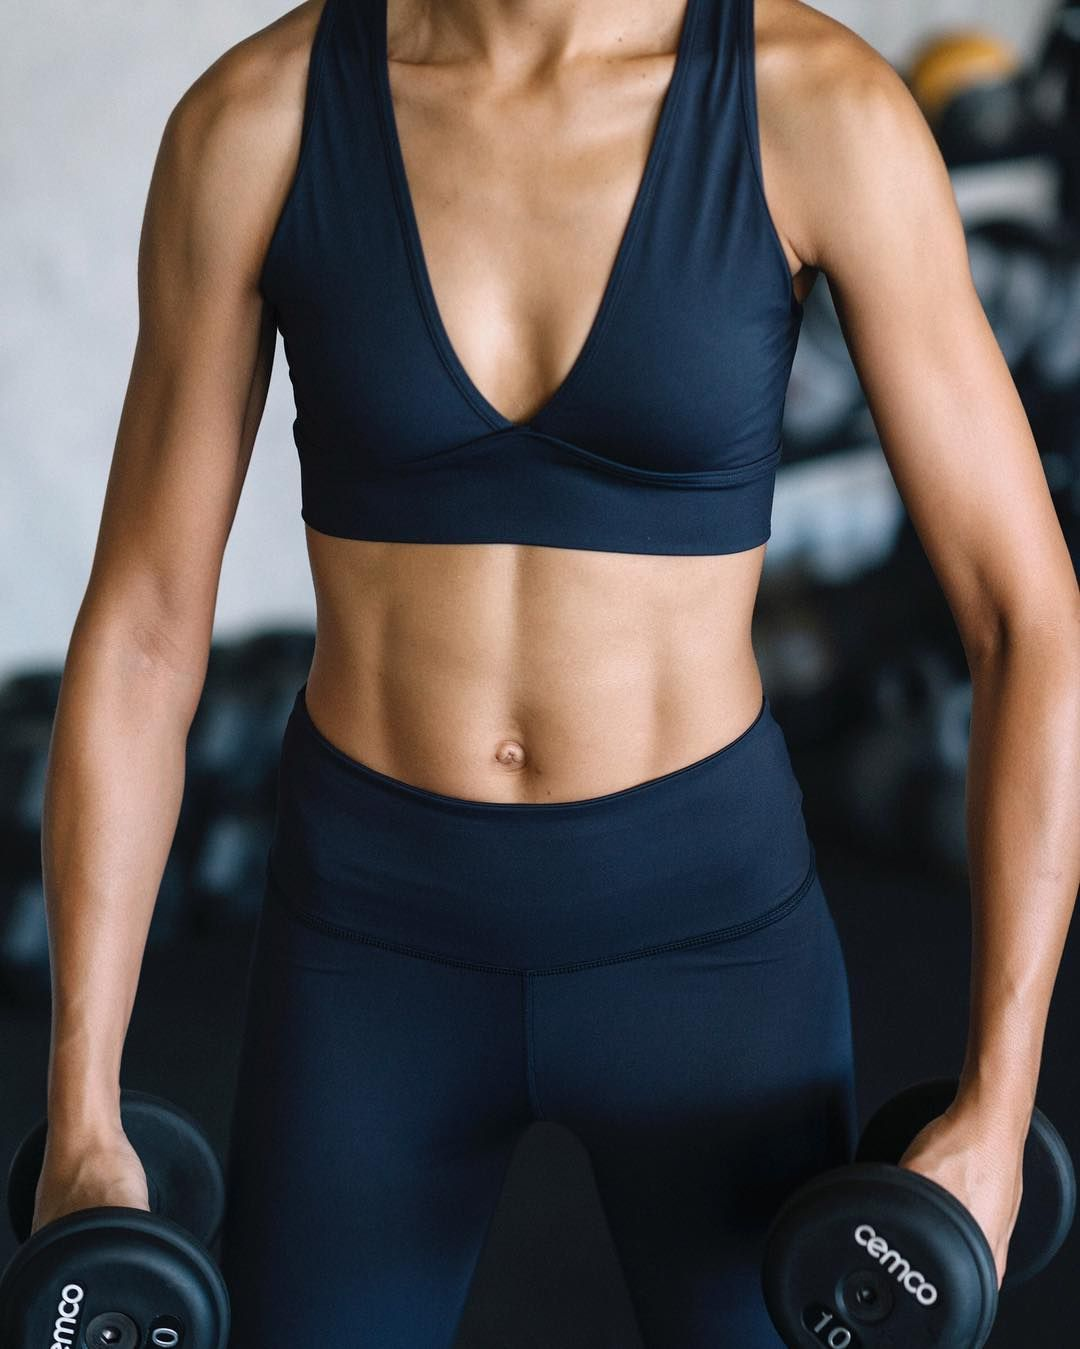 32d76cb9ec35e 24 Ways To Flatten Your Belly - Not Just About Looks Toned Bodies